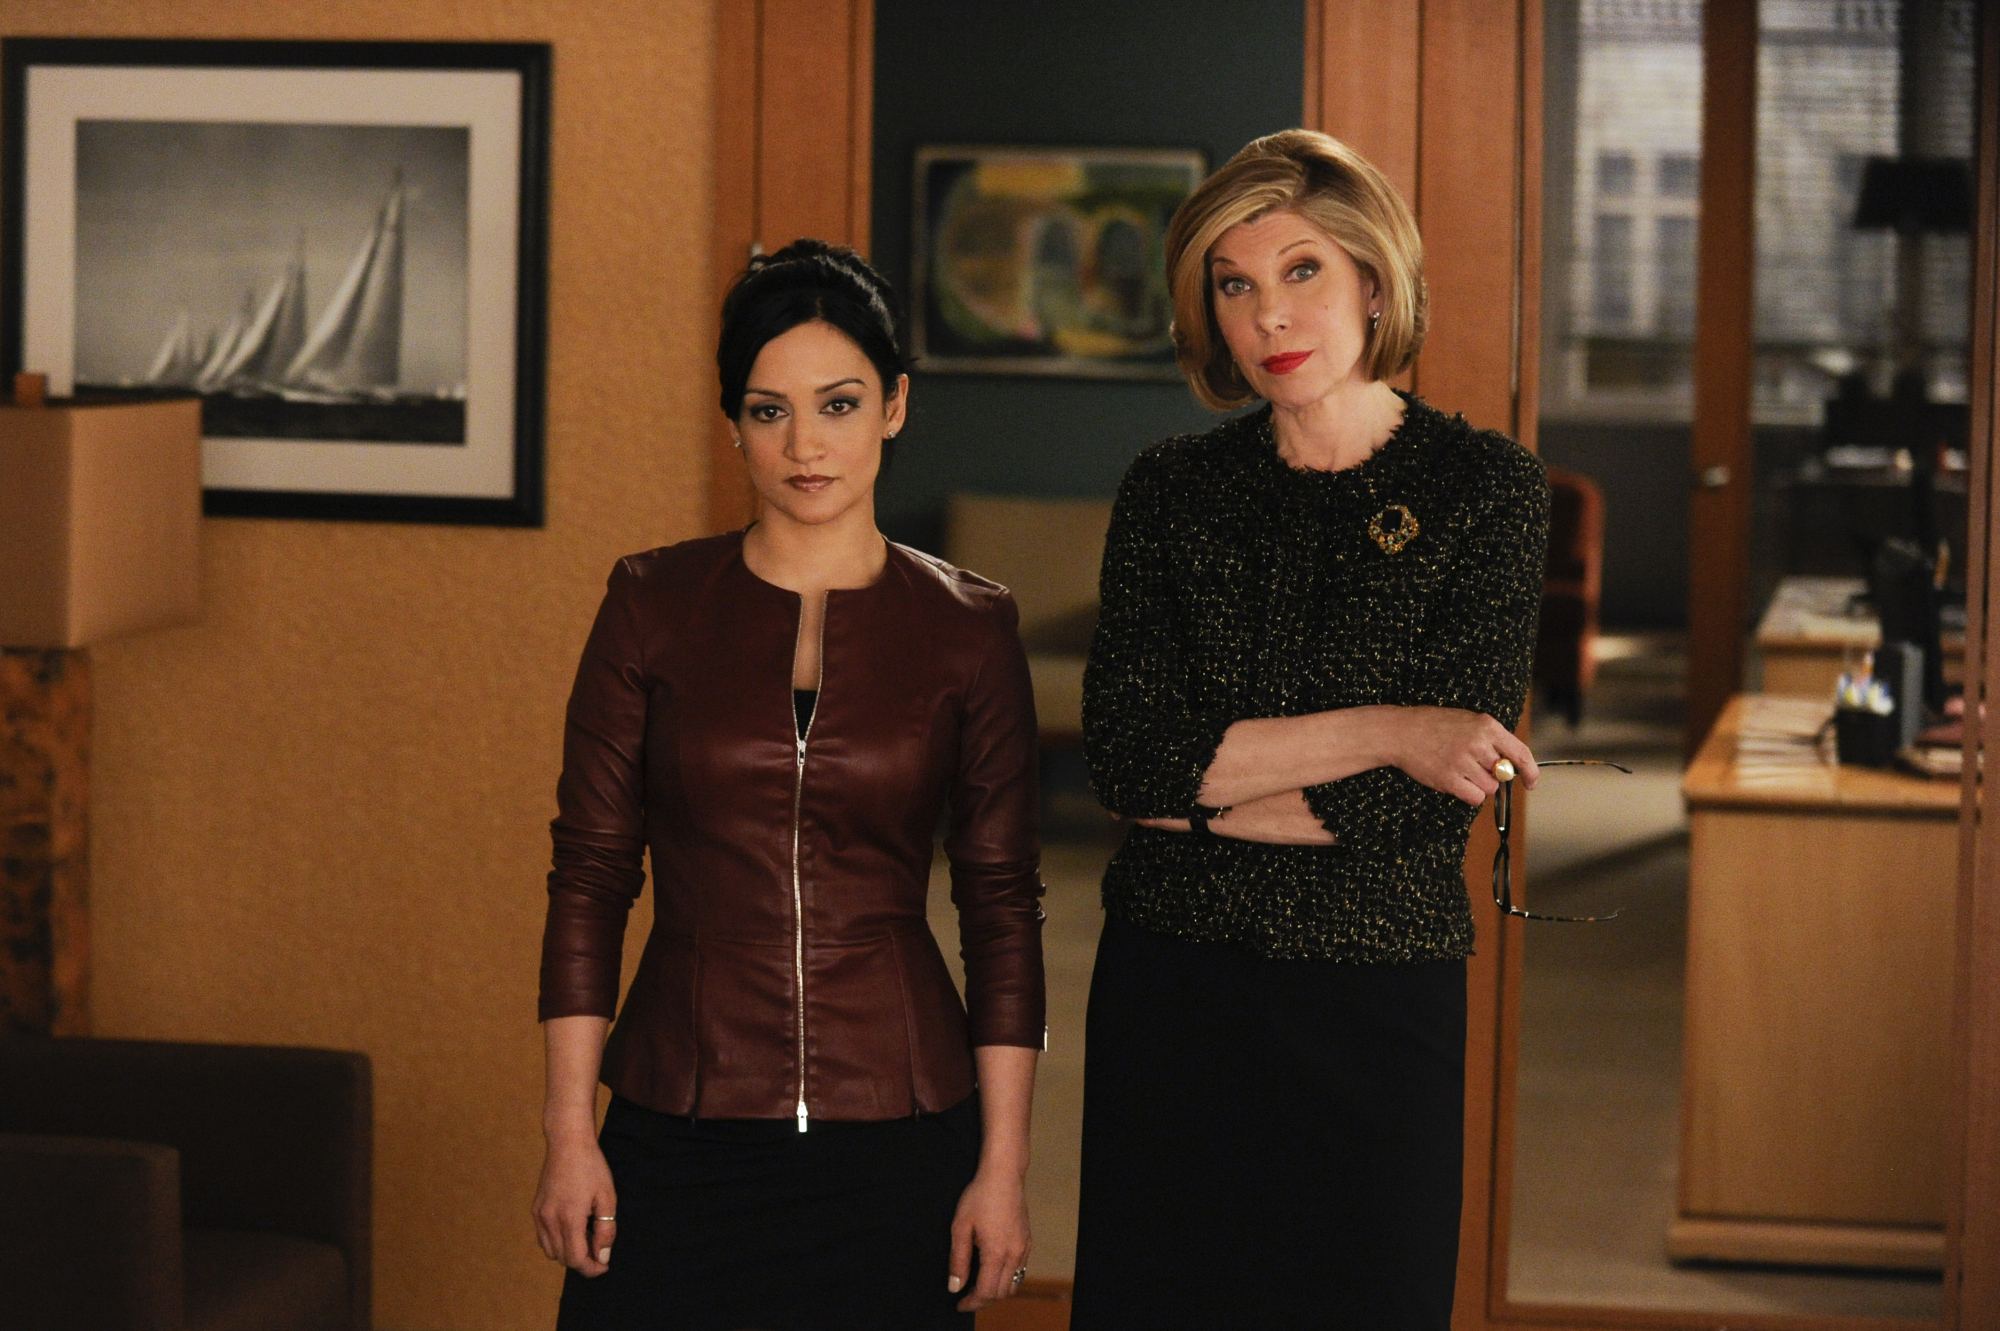 Kalinda and Diane in